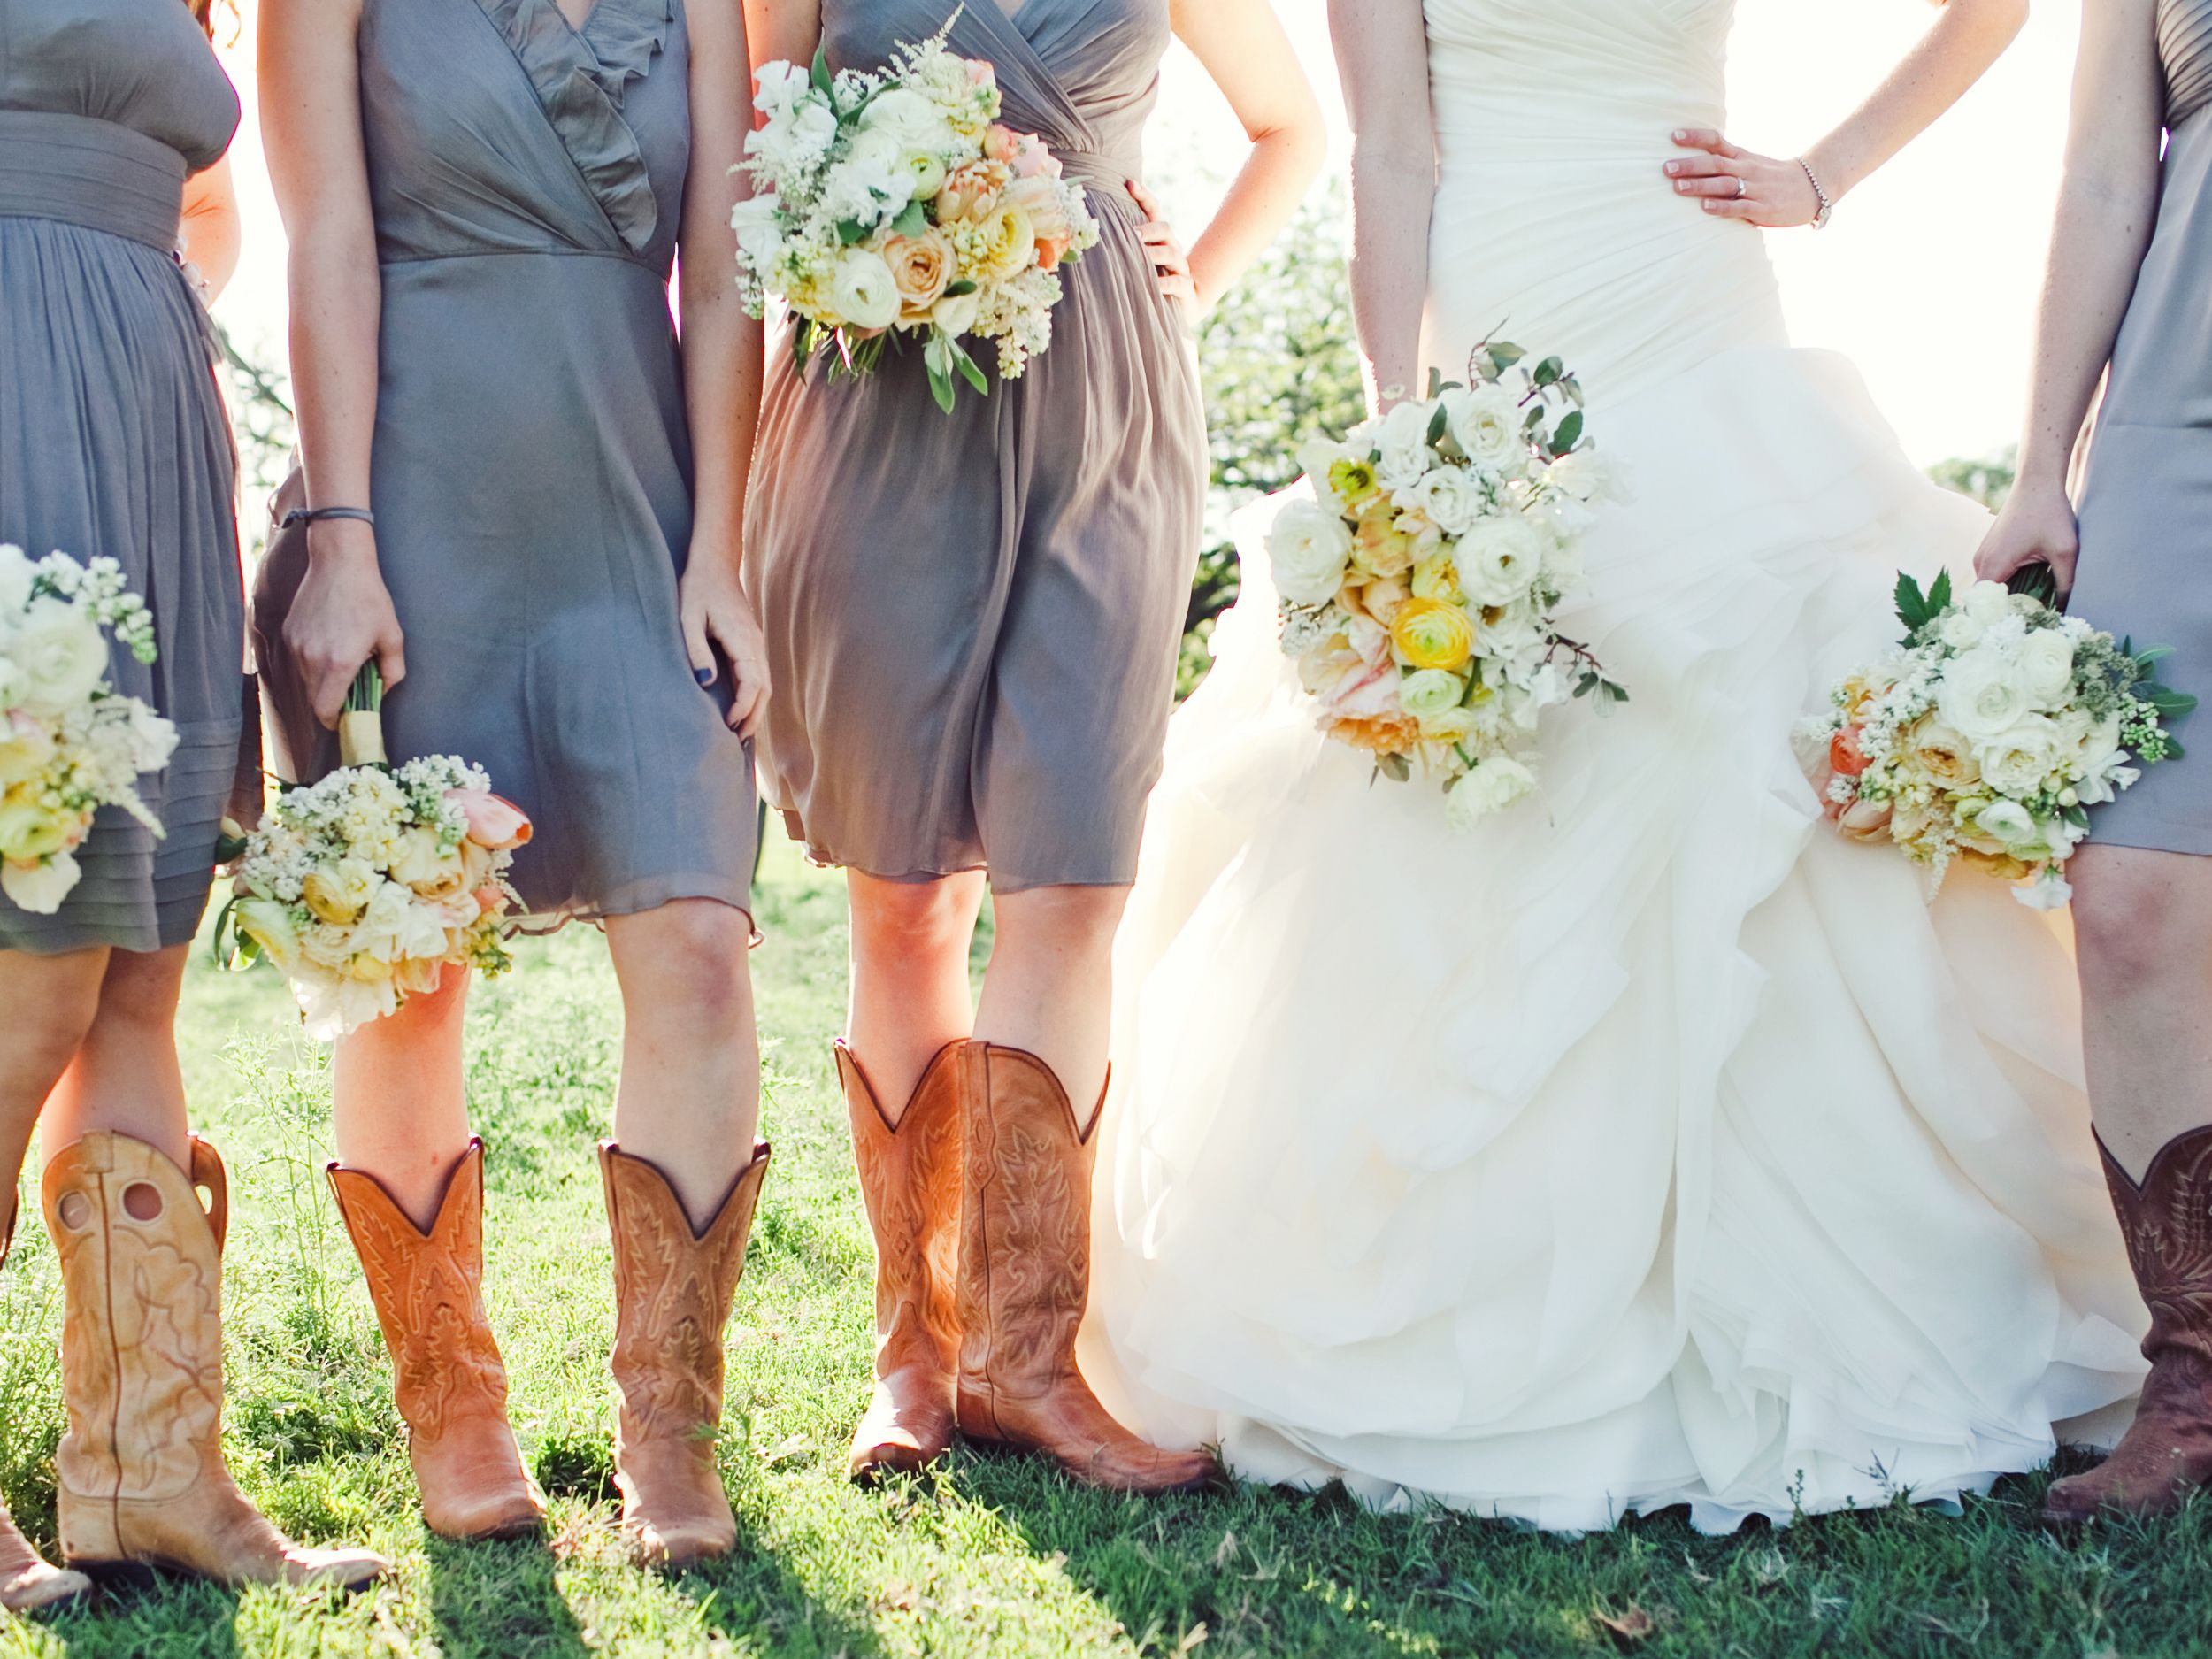 The All-Time Best Country Songs To Play At Your Wedding